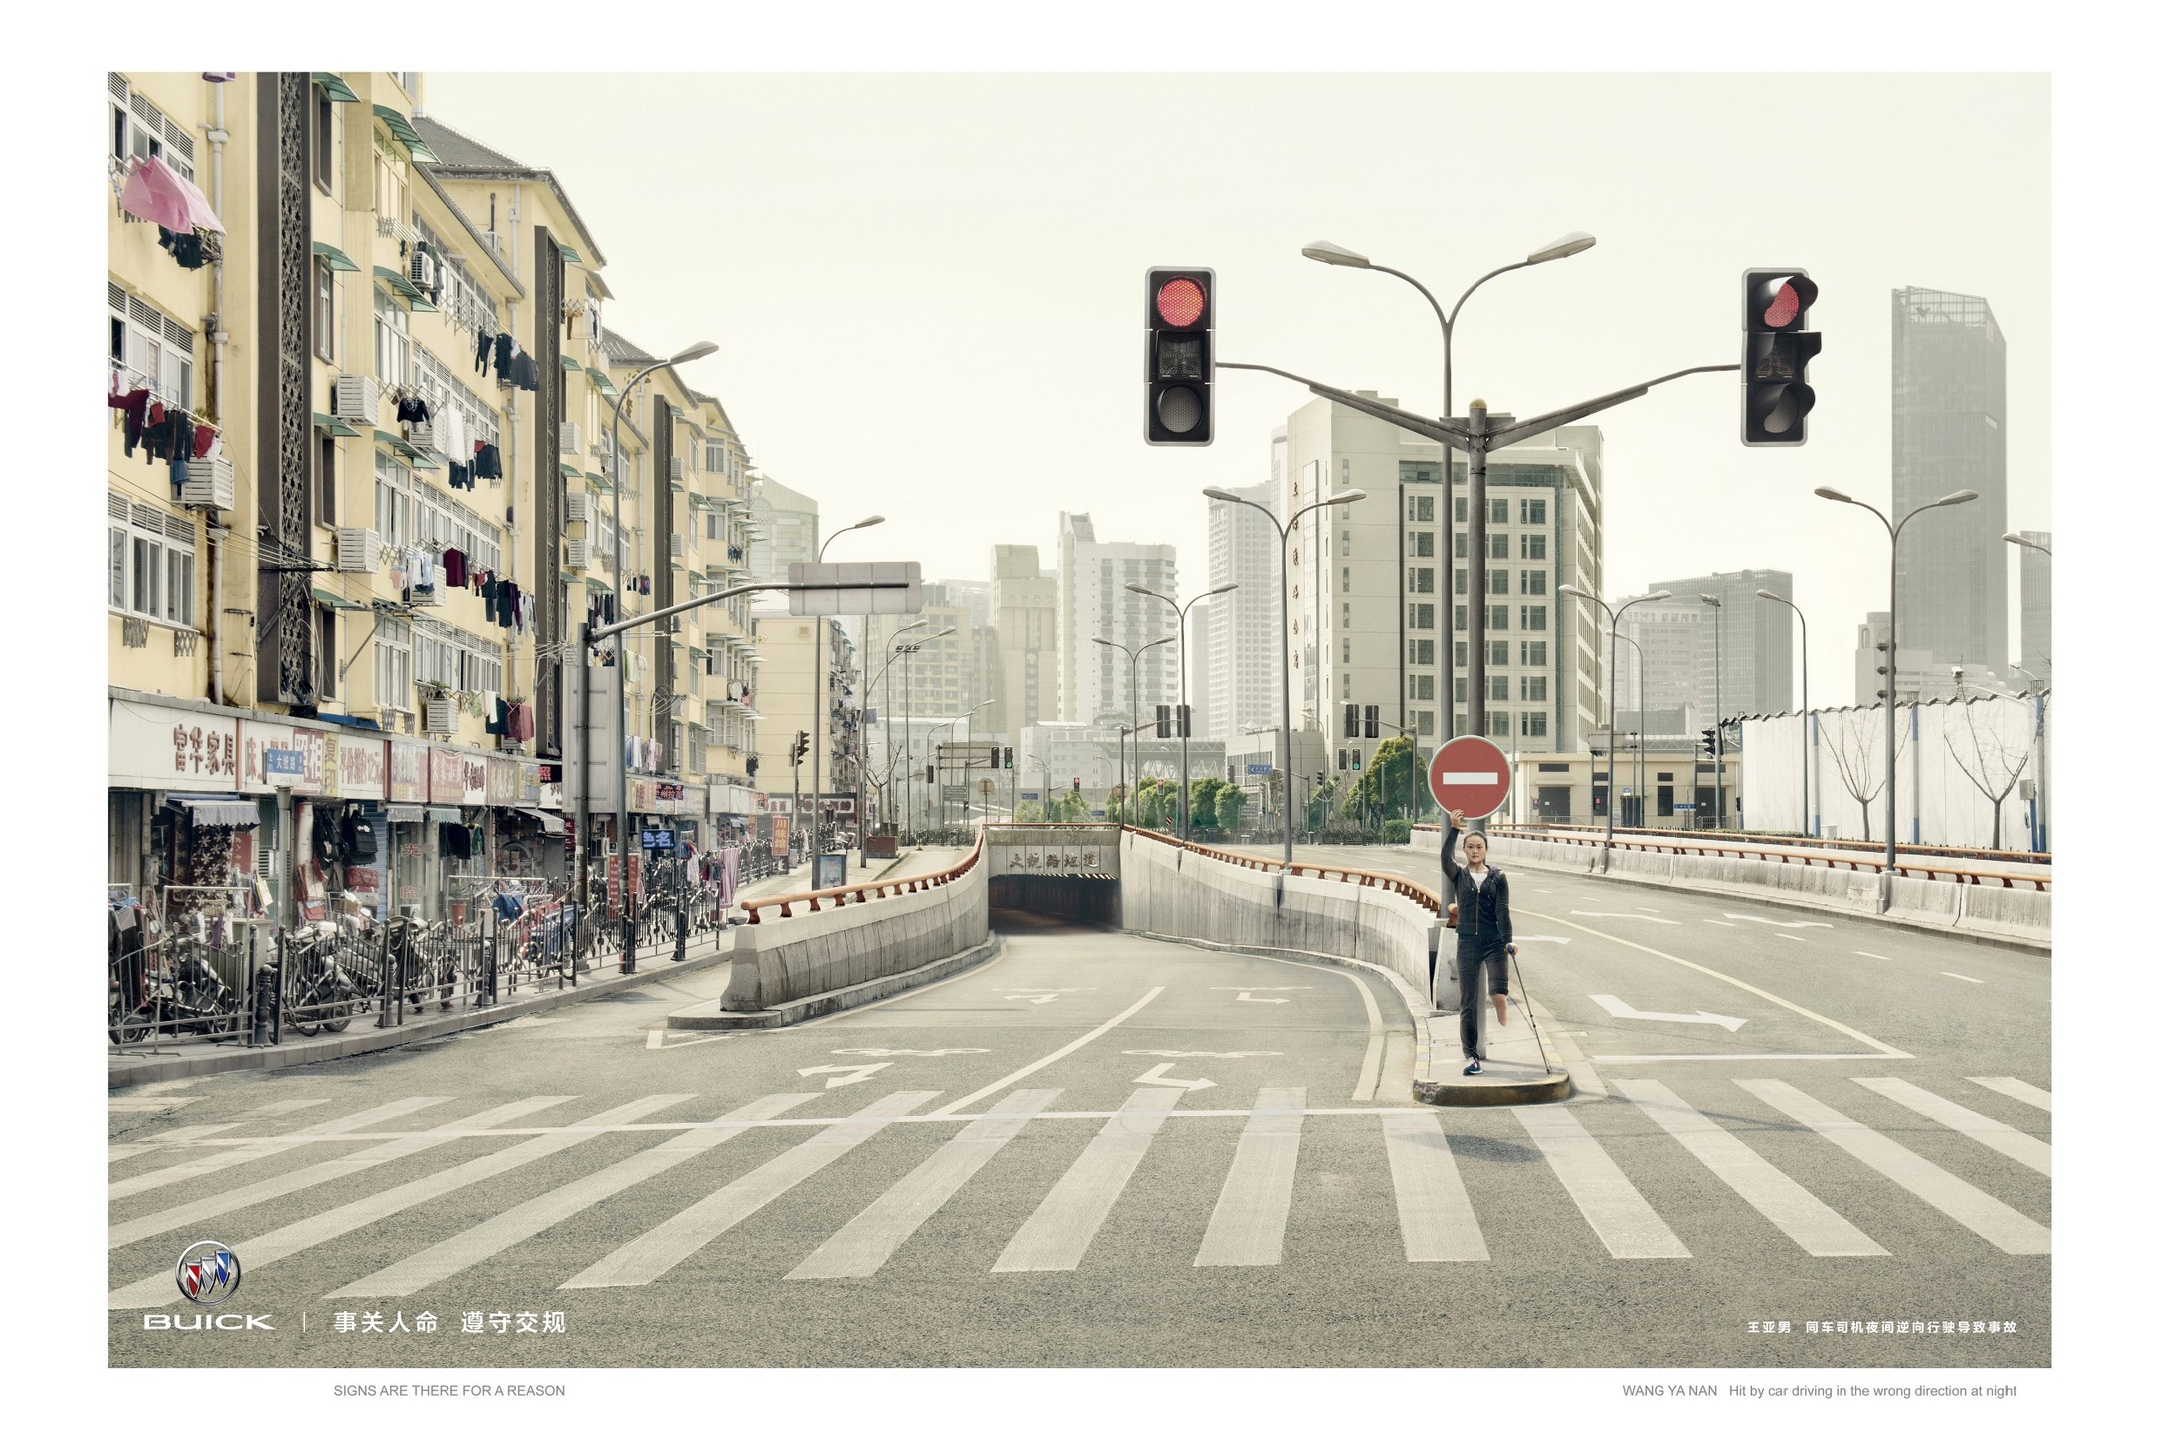 buick-road-safety-human-traffic-signs-best-print-ads-2015-lowe-china-gunn-report-1